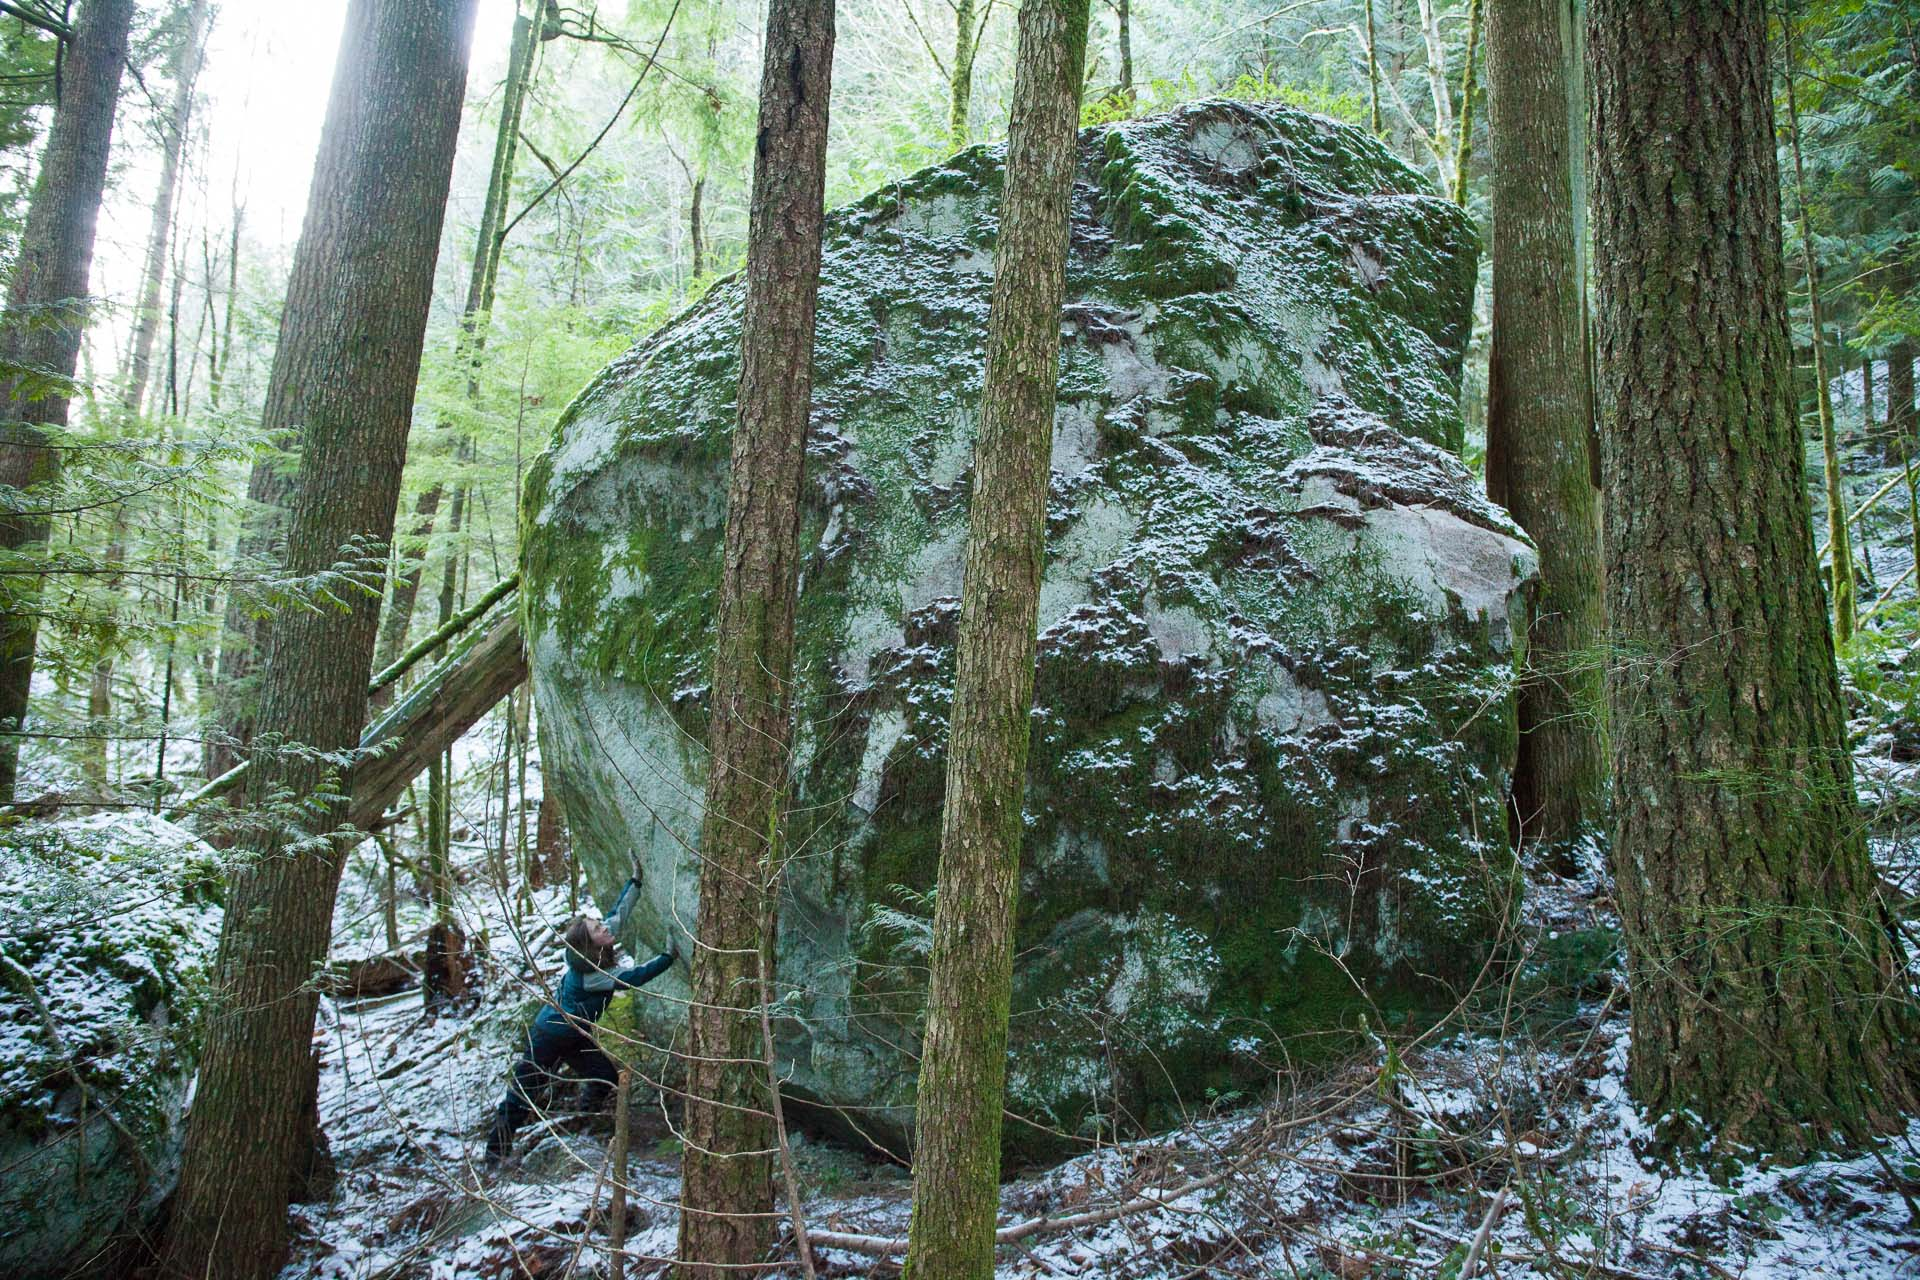 giant-boulder-in-forest-with-person.jpg